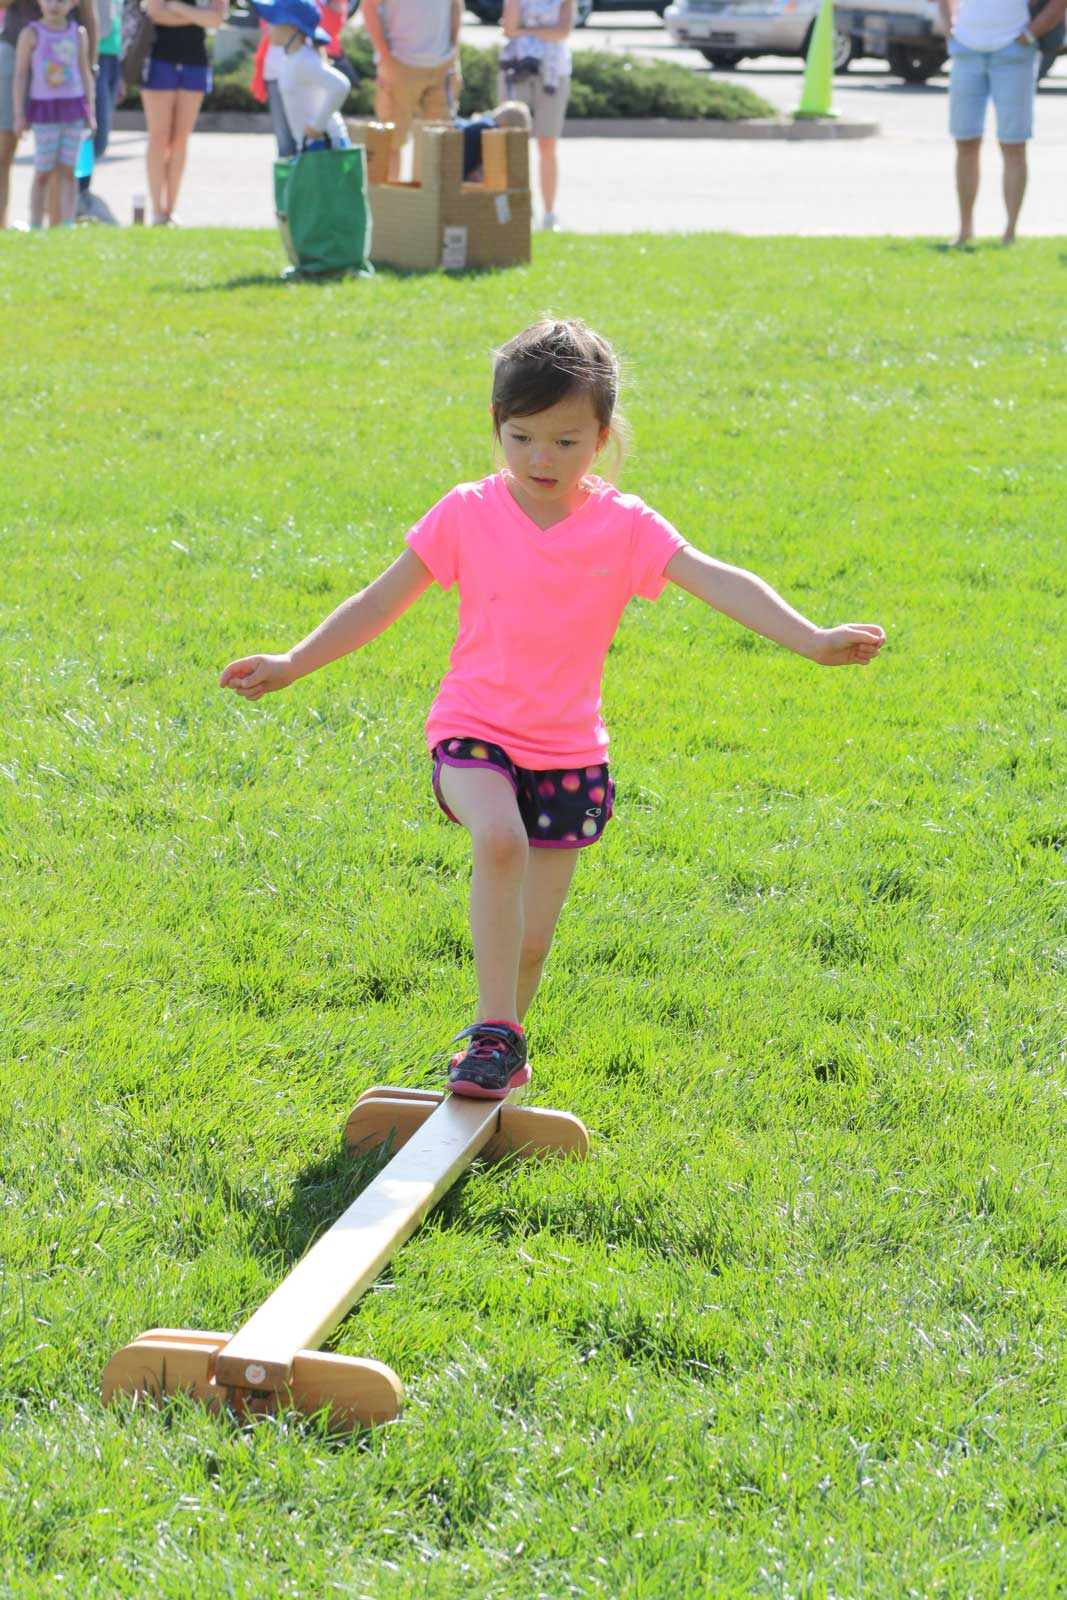 Young child on a small balance beam